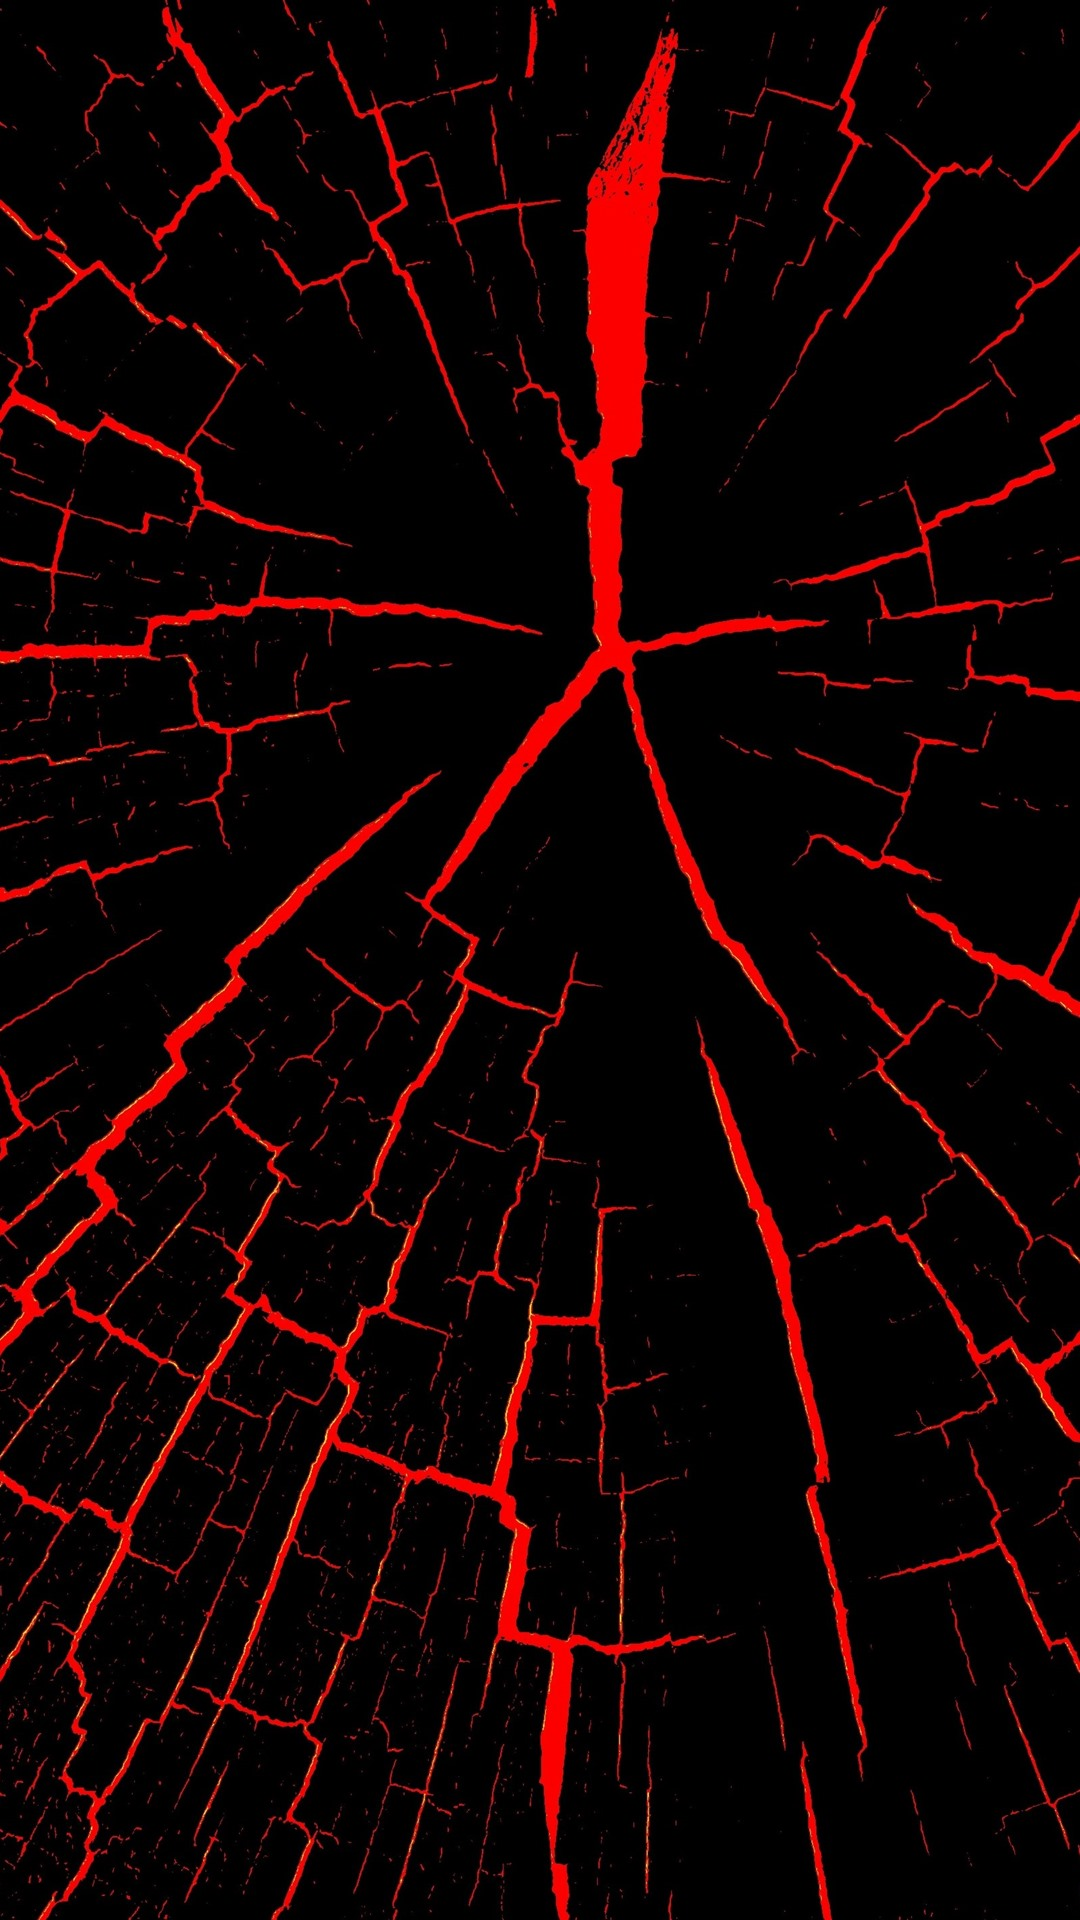 Wallpaper Cracks, Black And Red, Abstract 2880x1800 HD